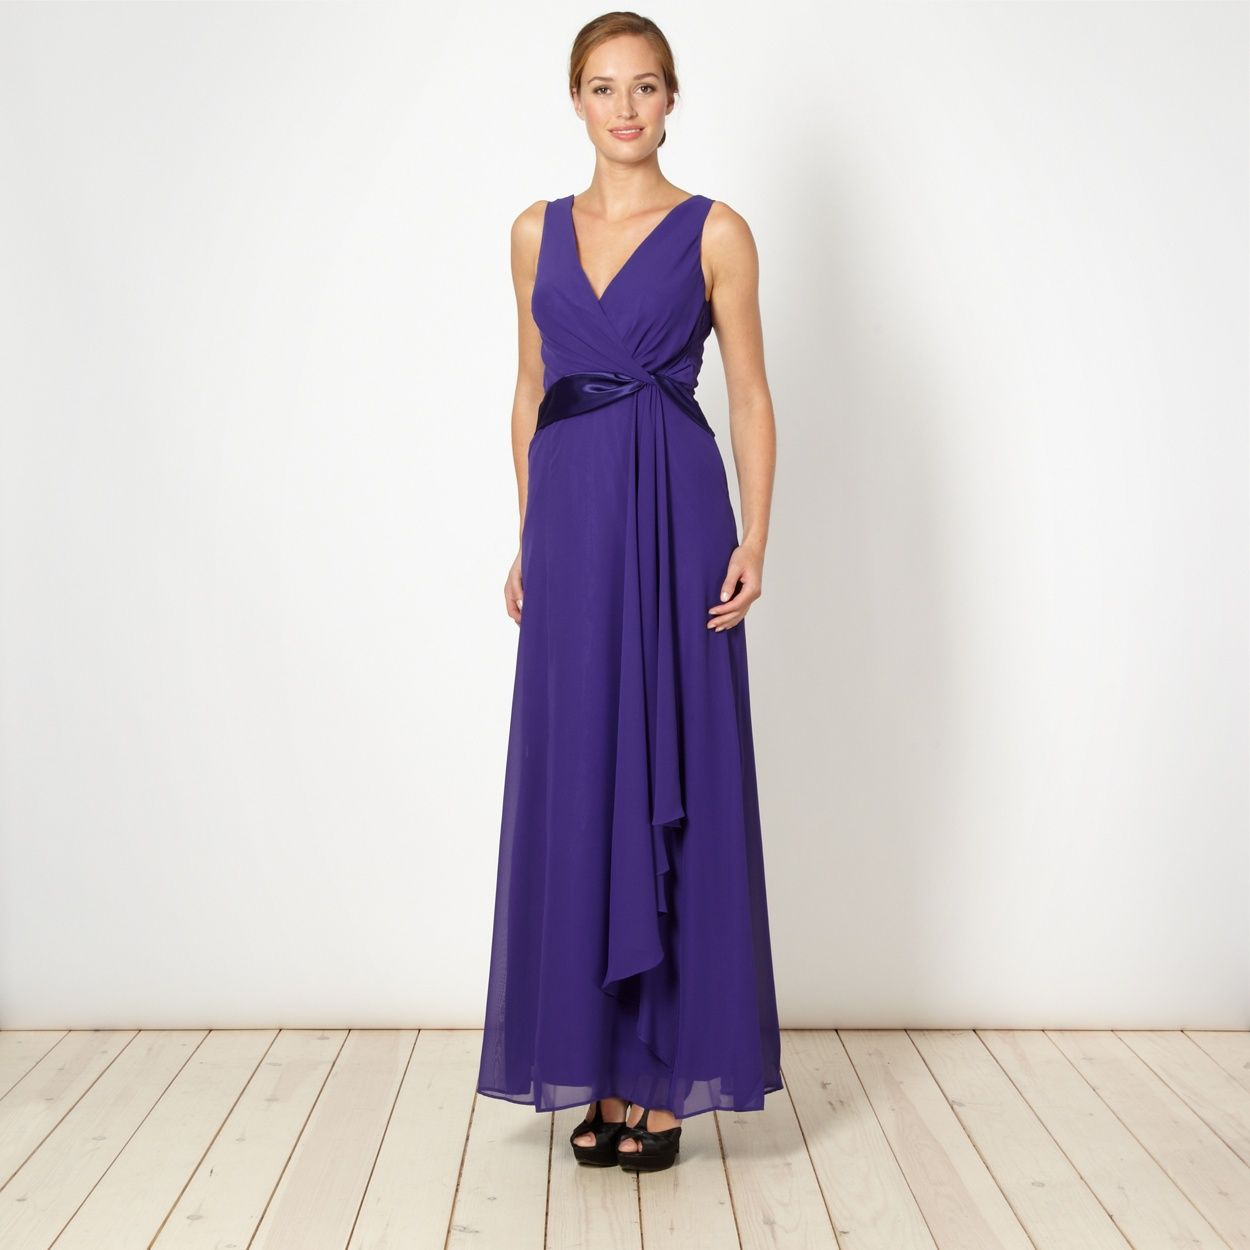 Debenhams Bridesmaid Dresses Purple Choice Image - Braidsmaid Dress ...